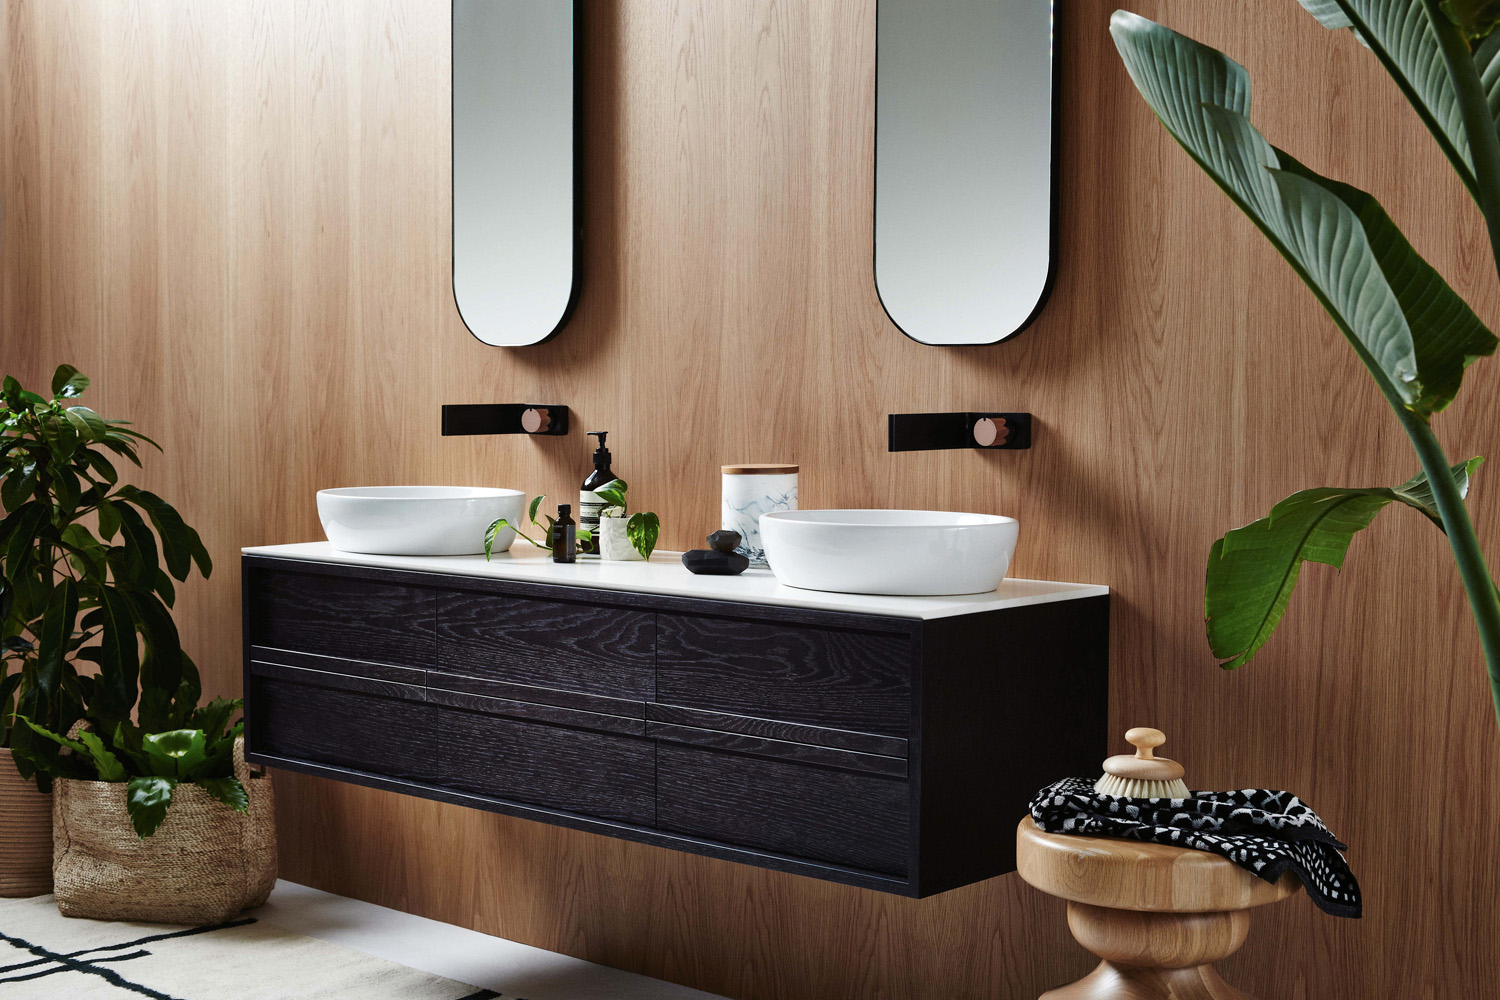 ISSY Z8 6 Drawer Vanity 1500 and ISSY Z1 Oval Mirror 380 (in situ side angle)